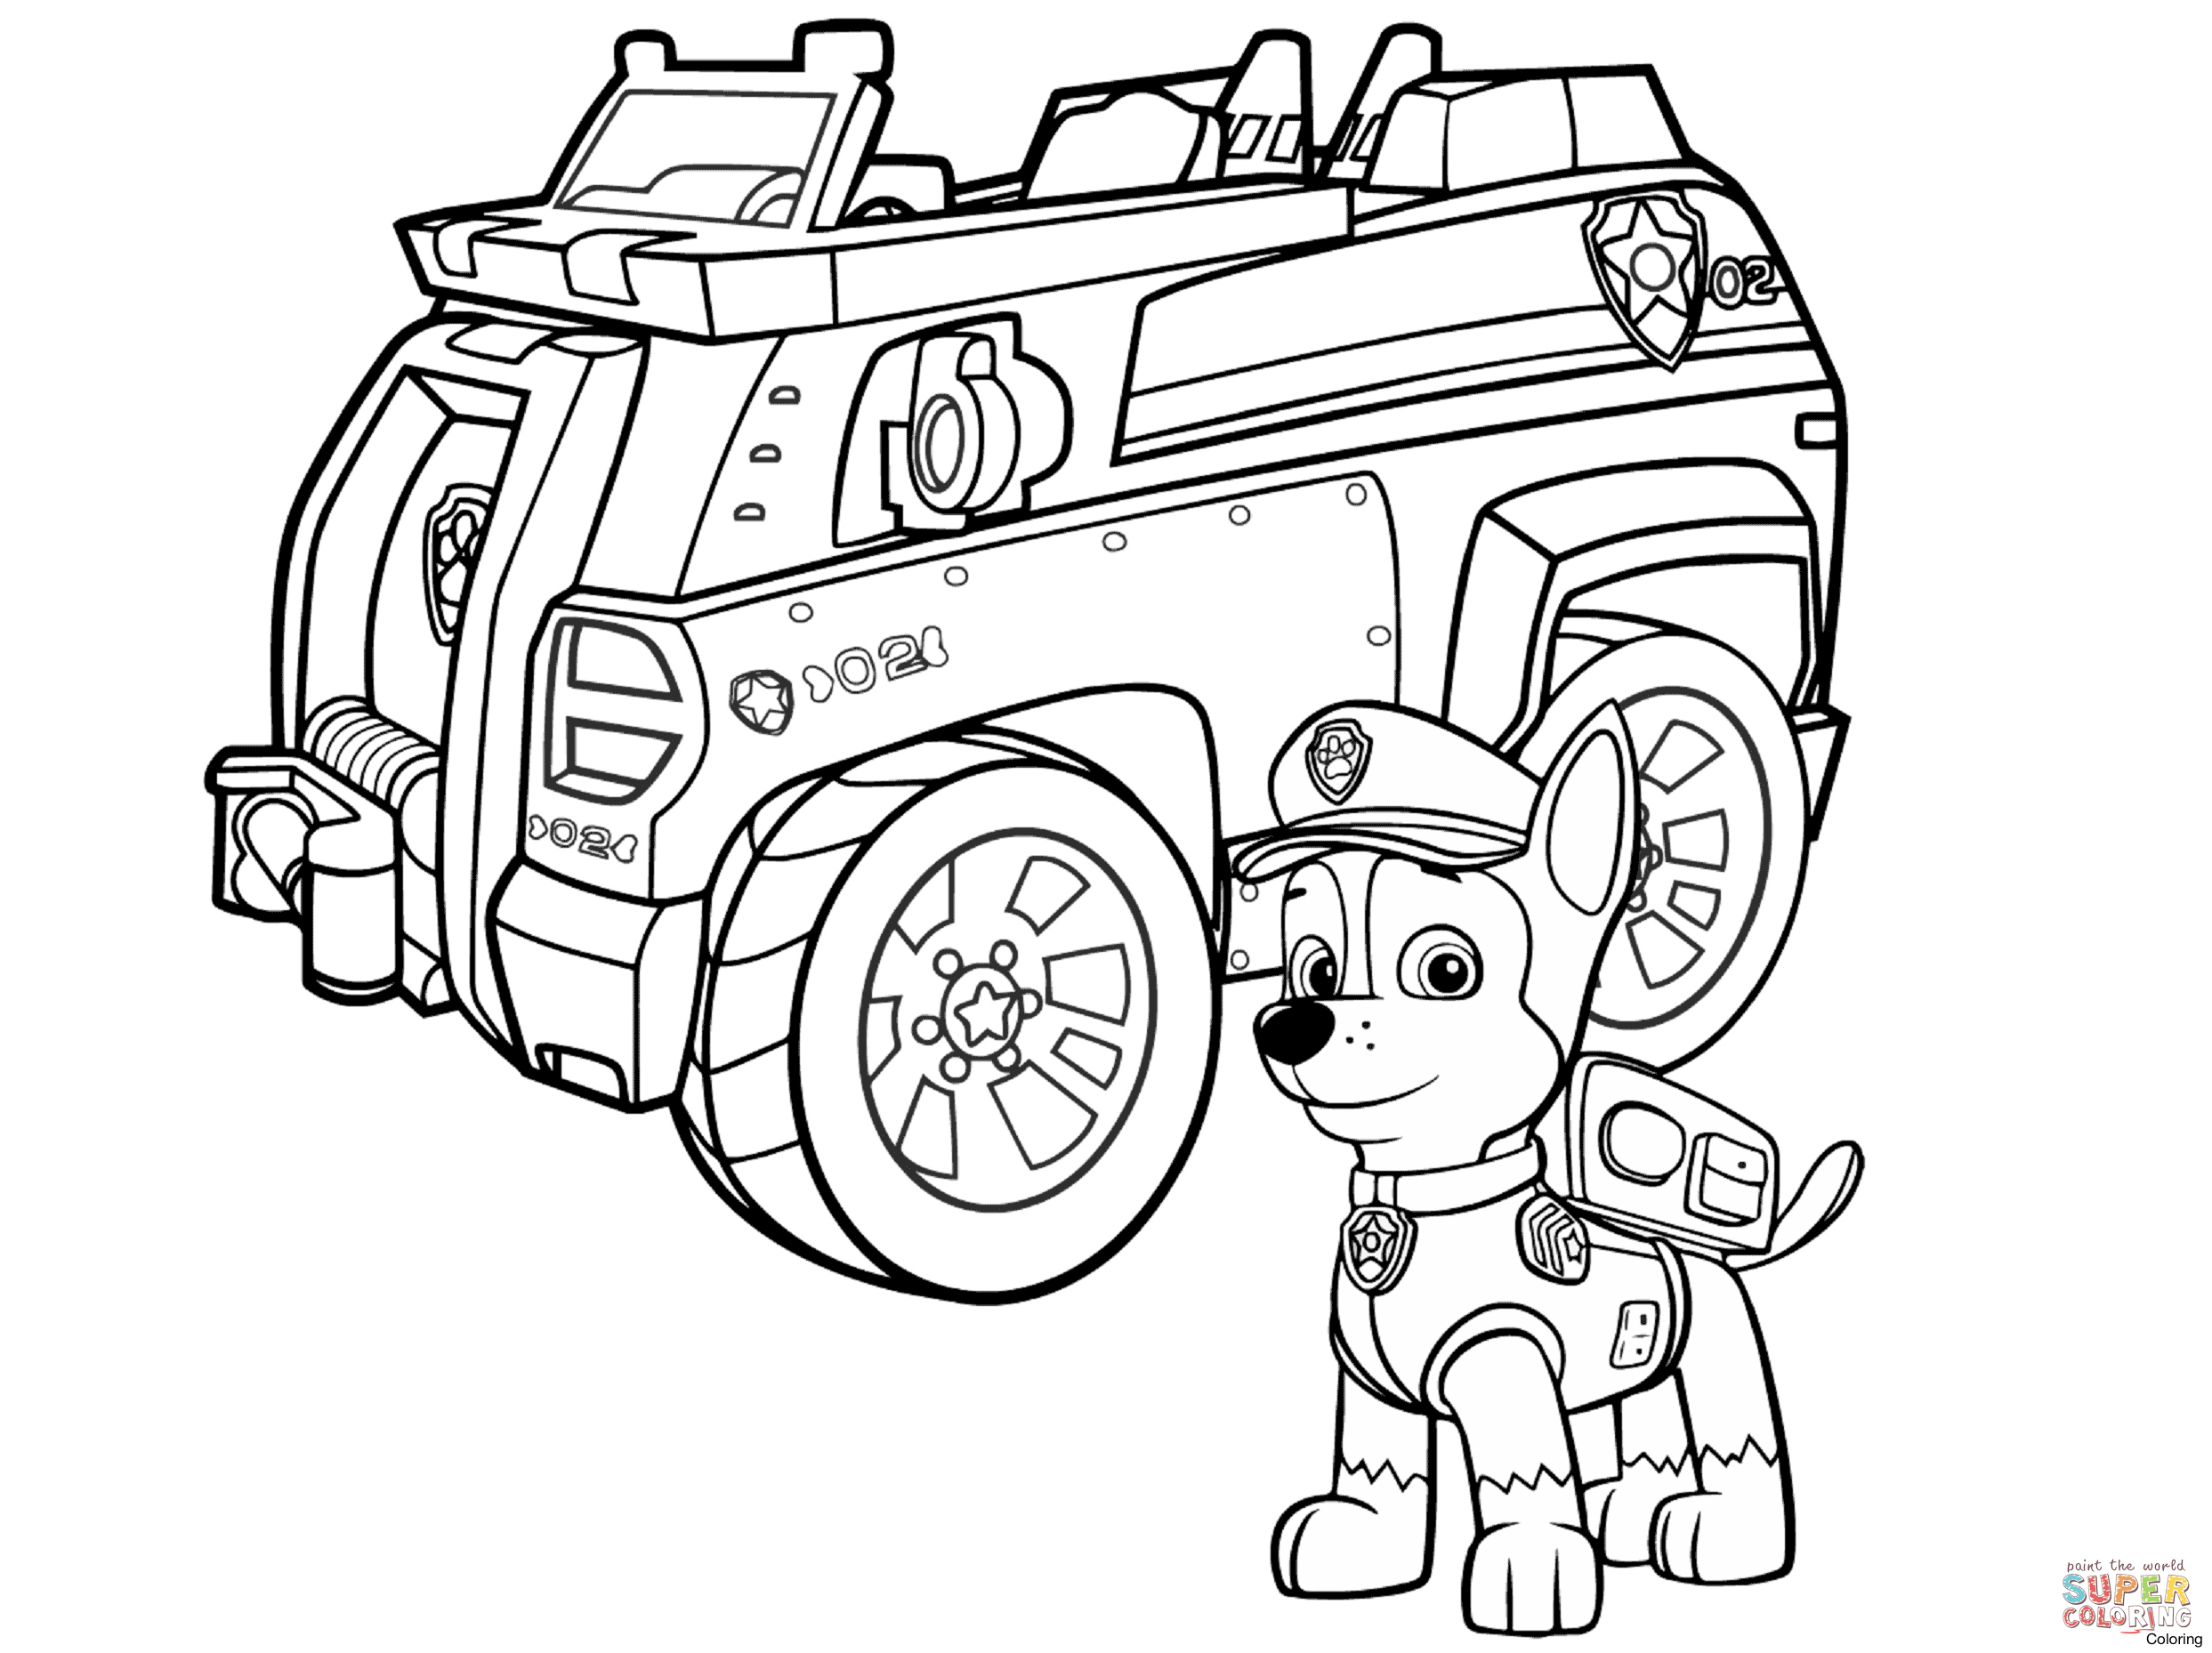 2486x1858 Free Printable Paw Patrol Coloring Pages For Kids Print Out And